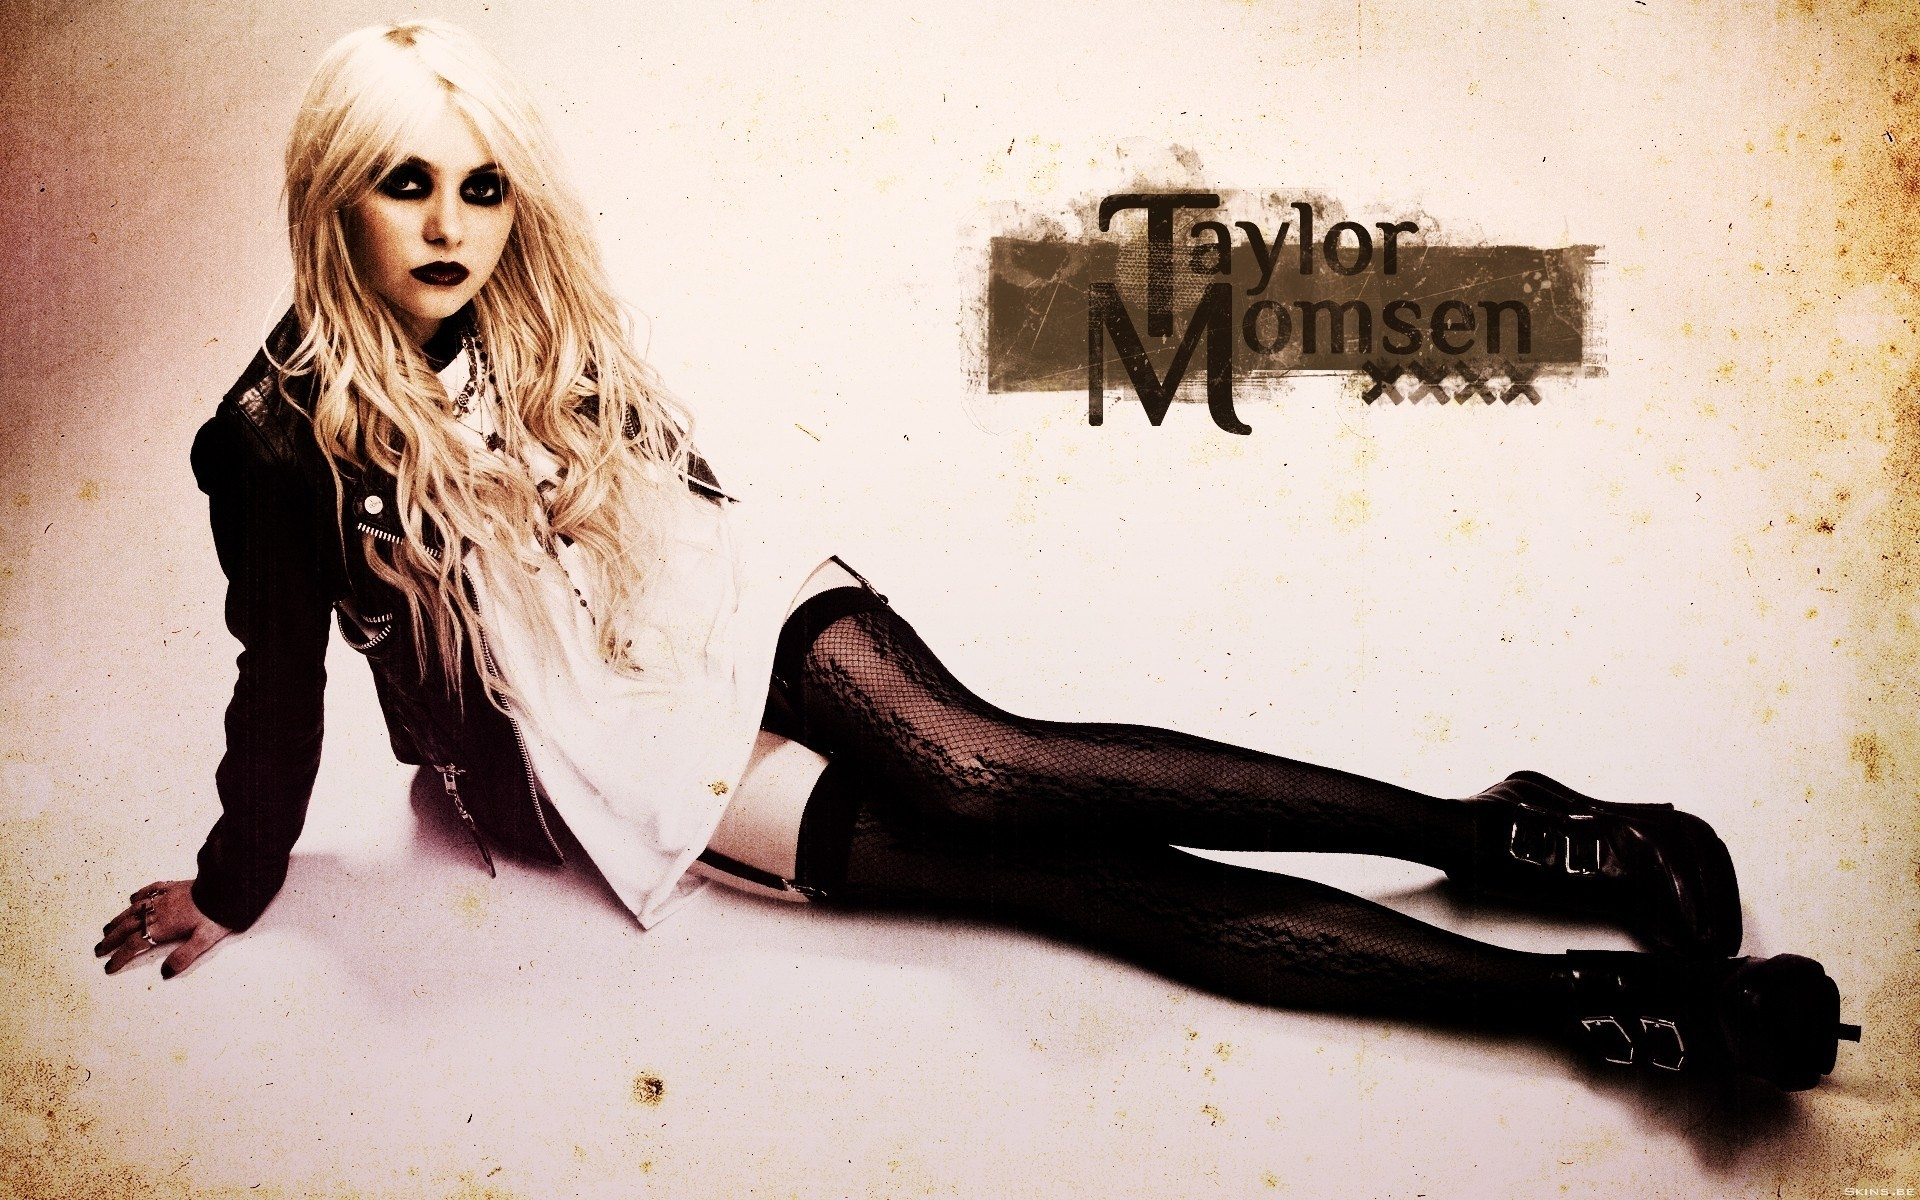 taylor momsen pic free hd widescreen – taylor momsen category